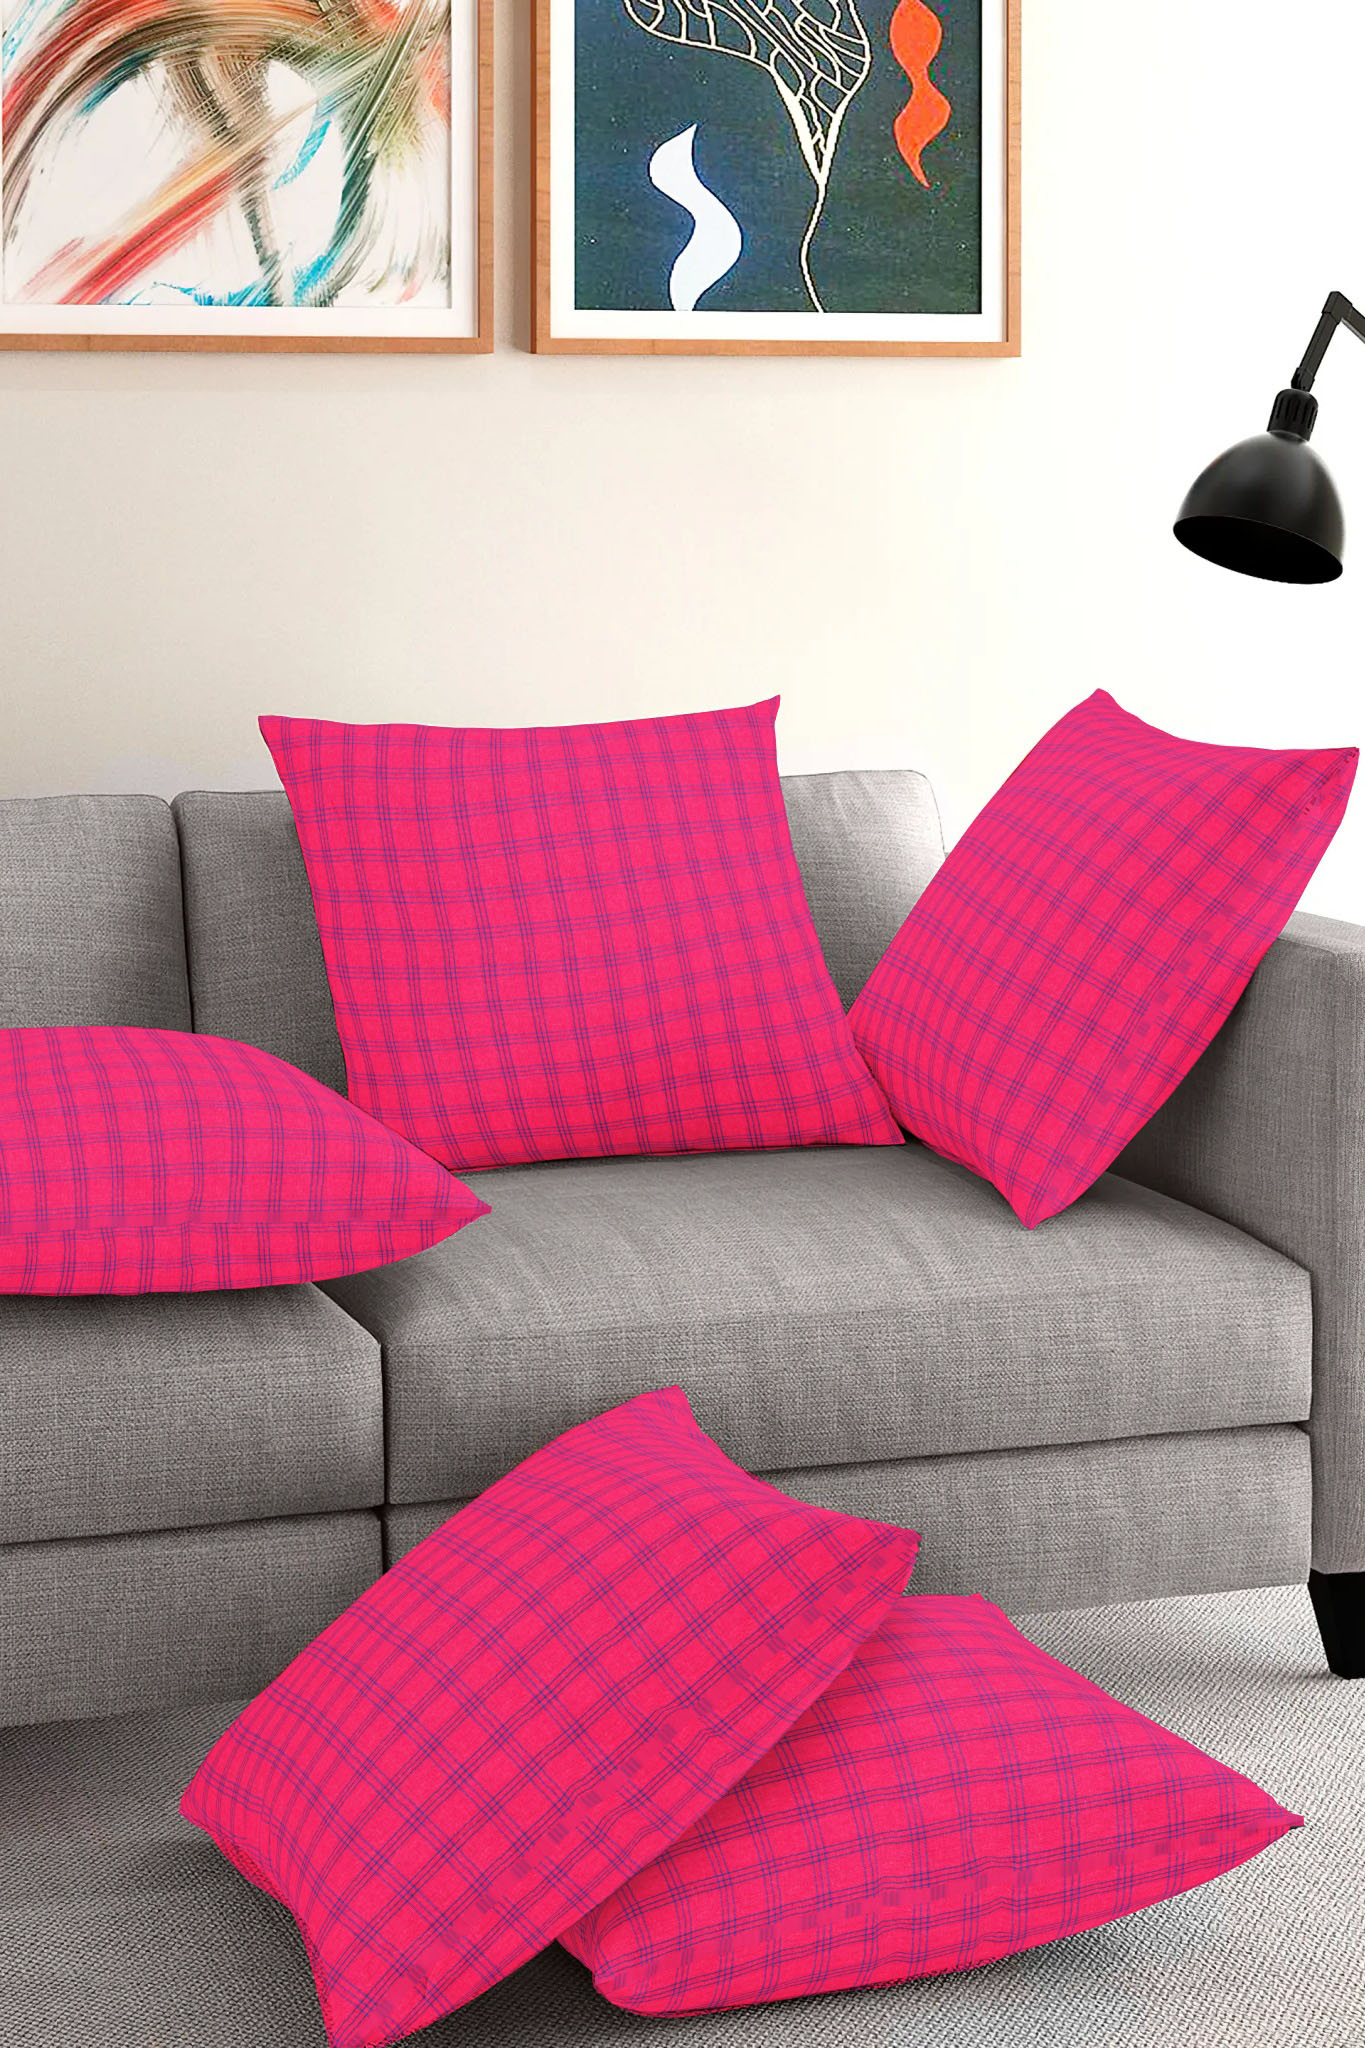 Set of 5-Magenta Pink Blue Cotton Cushion Cover-35384-16x16 Inches